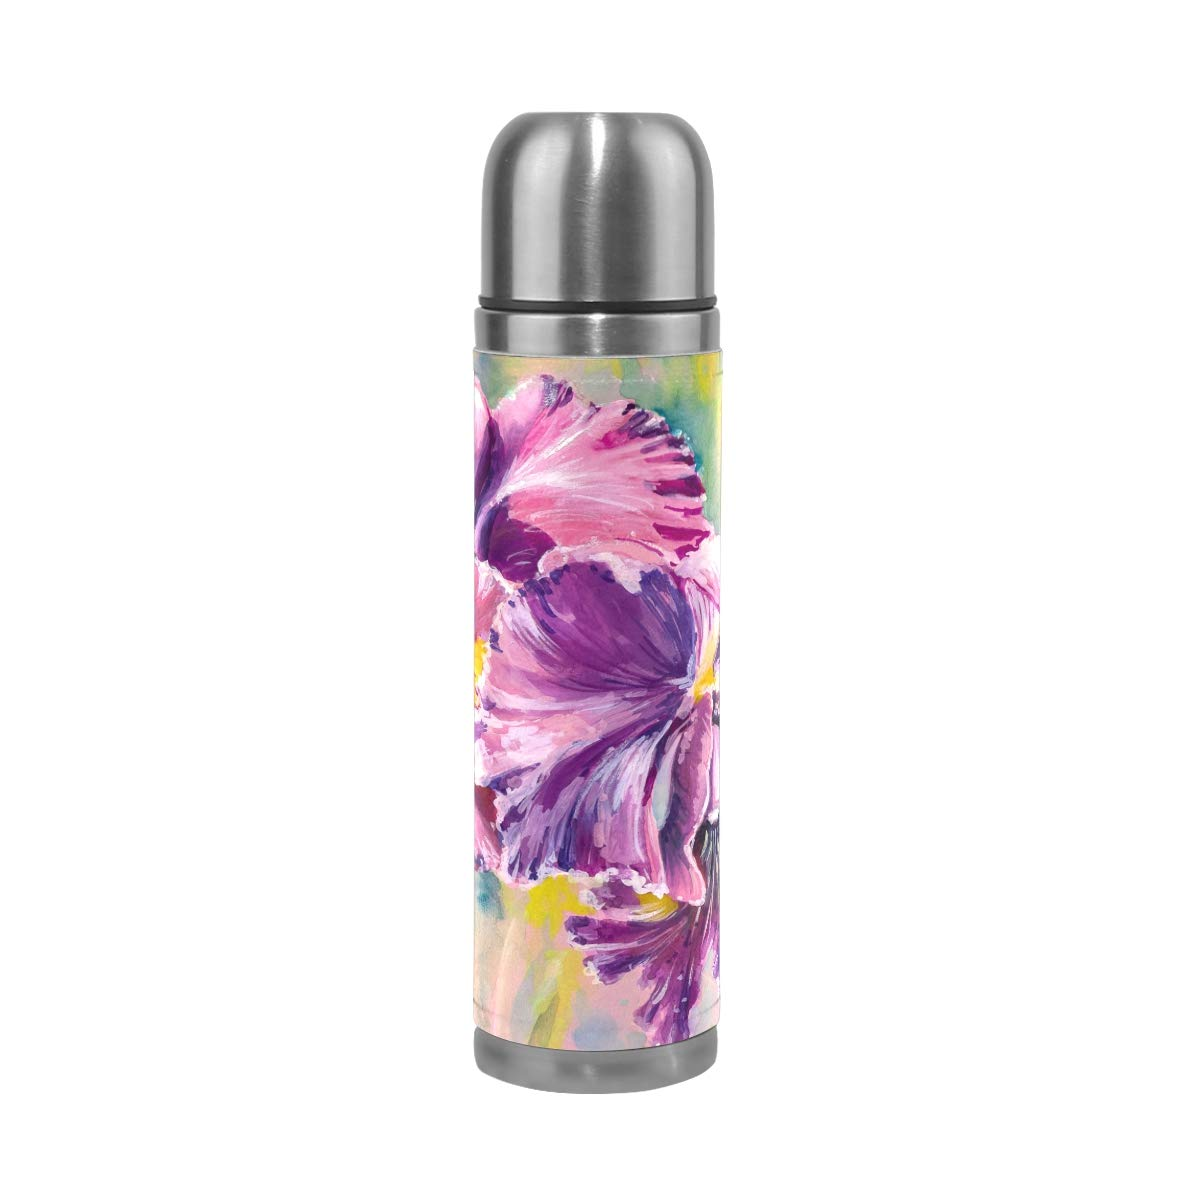 FORMRS-Thermos-Vacuum-Cup-Orchid-Flowers-Insulated-Stainless-Travel-Mug-for-Men-Women-Kids